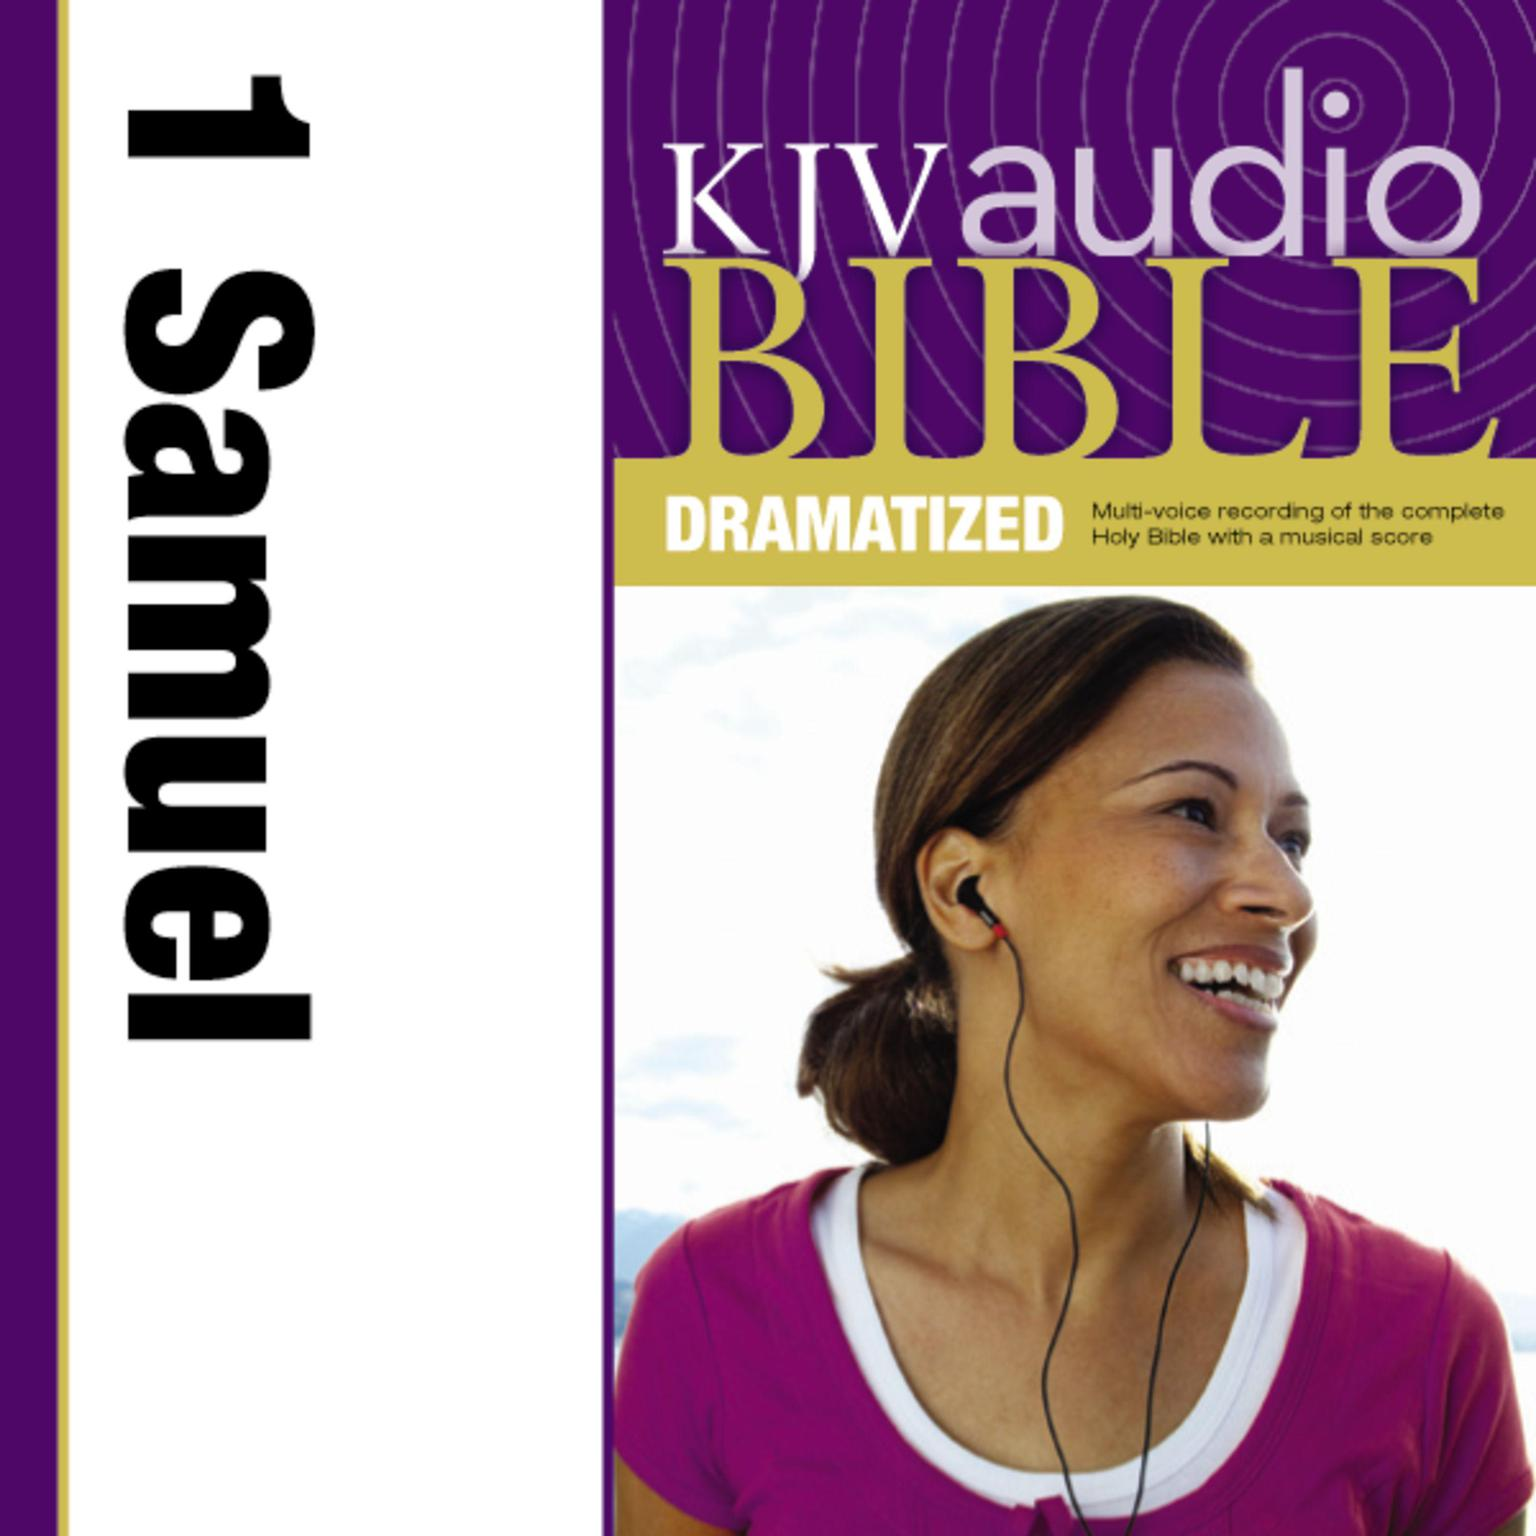 Printable KJV, Audio Bible, Dramatized: 1 Samuel, Audio Download Audiobook Cover Art